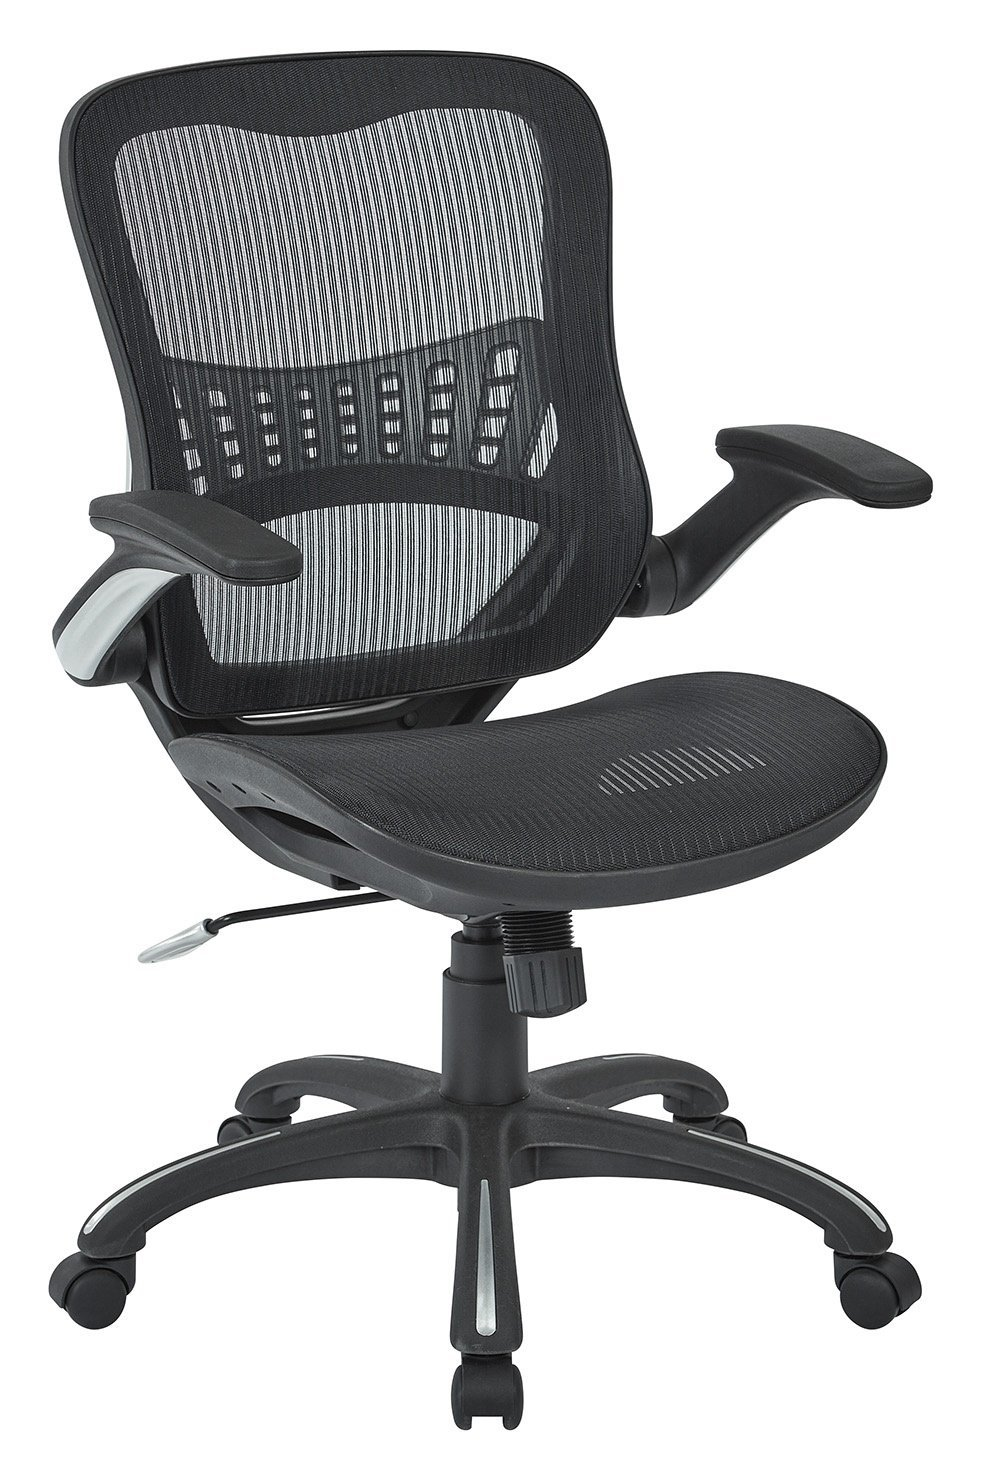 The Best Office Chairs For Short People With Reviews Office Chairs